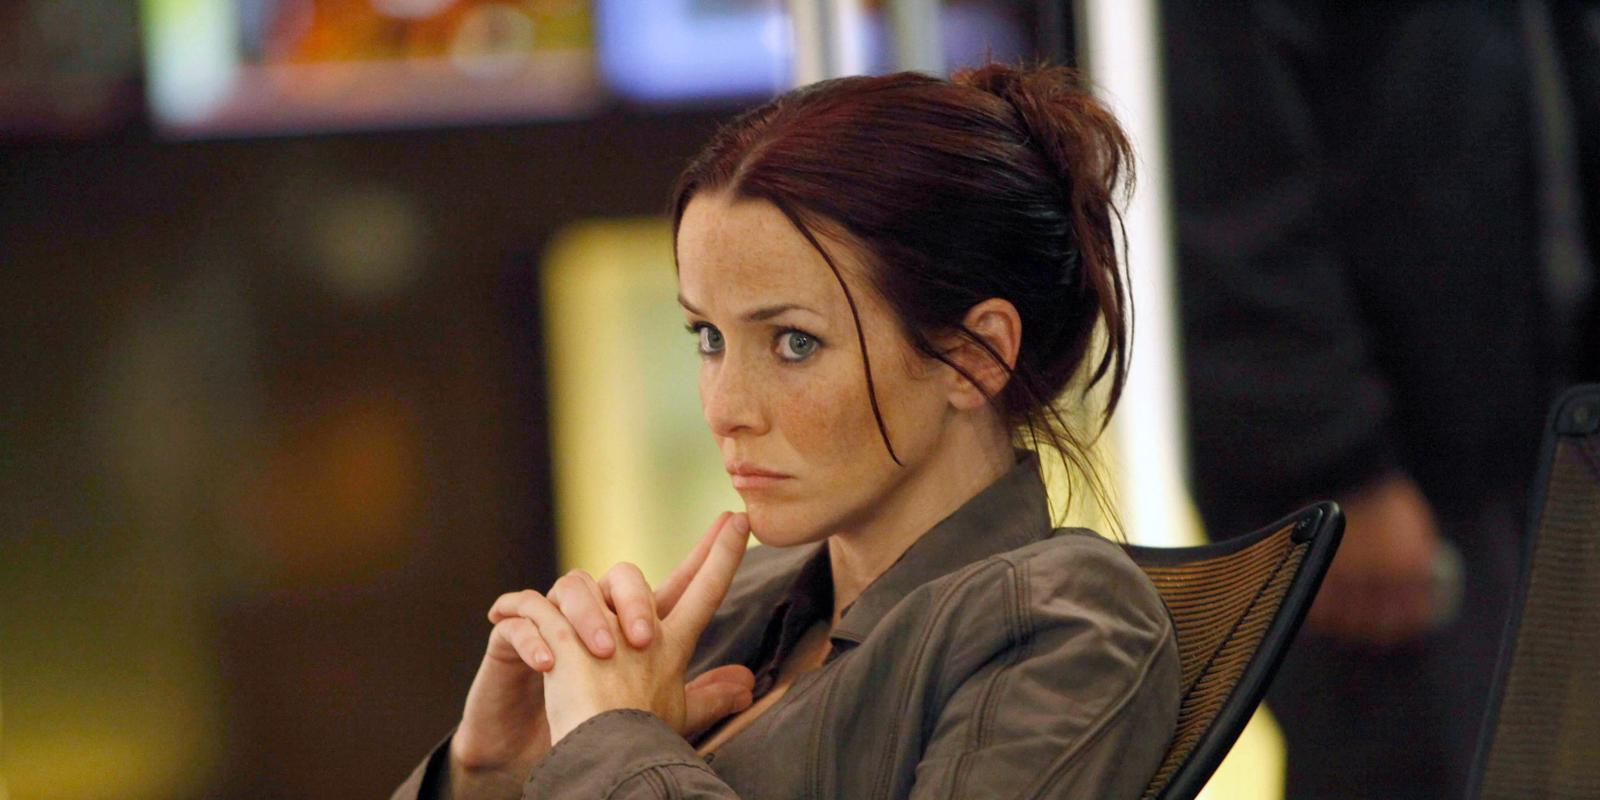 annie wersching height weightannie wersching wiki, annie wersching and ian somerhalder, annie wersching gif, annie wersching height, annie wersching young, annie wersching height weight, annie wersching star trek, annie wersching photo, annie wersching movies and tv shows, annie wersching gallery, annie wersching instagram, annie wersching 24, annie wersching vampire diaries, annie wersching, annie wersching imdb, annie wersching castle, annie wersching twitter, annie wersching supernatural, annie wersching tvd